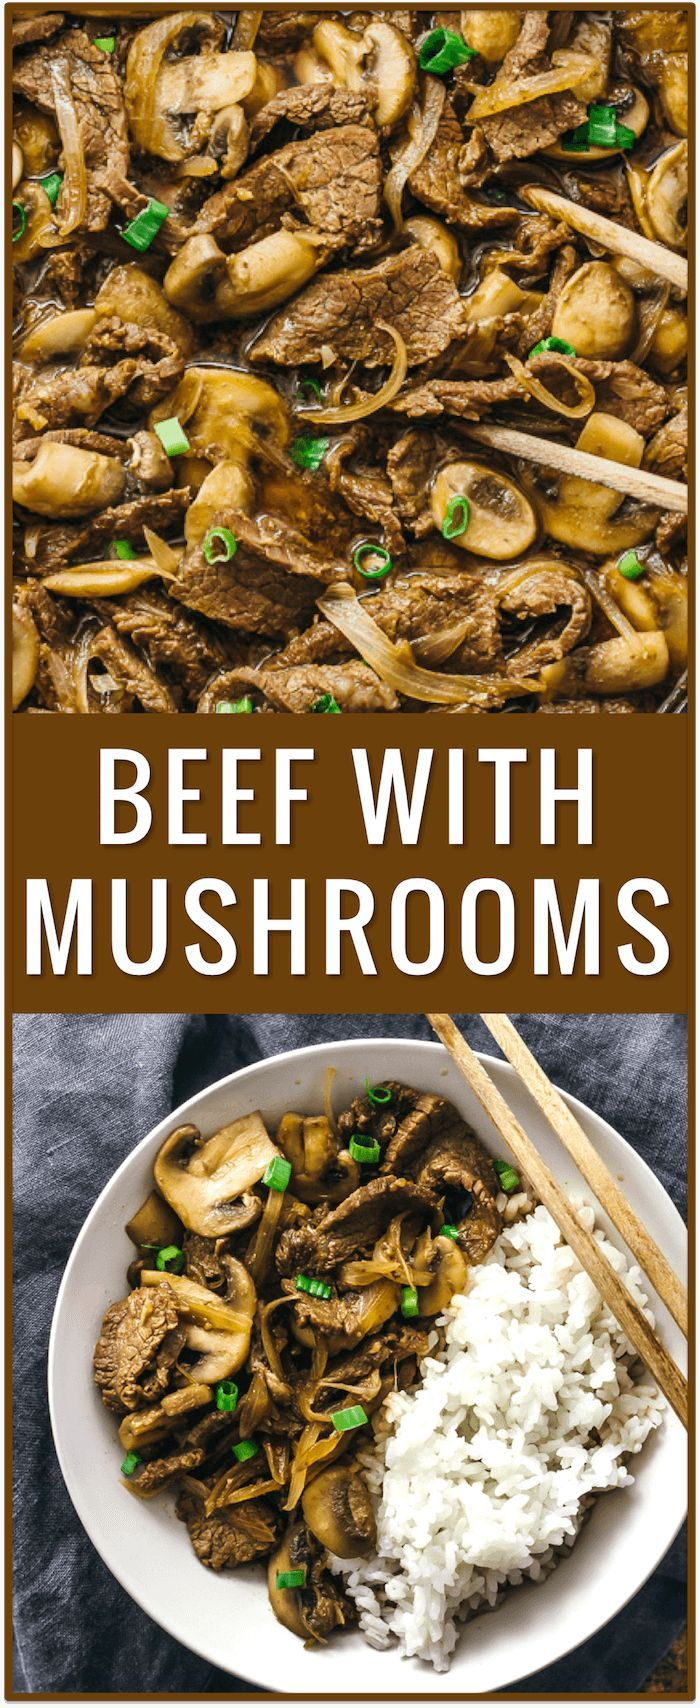 Easy beef with mushrooms and onions recipe, steak and mushrooms, sauce, sauteed mushrooms with red wine, sirloin steak, flank steak, stir fry, stroganoff, stew, paleo, crockpot, ground, soup, gravy, healthy, rice via @savory_tooth